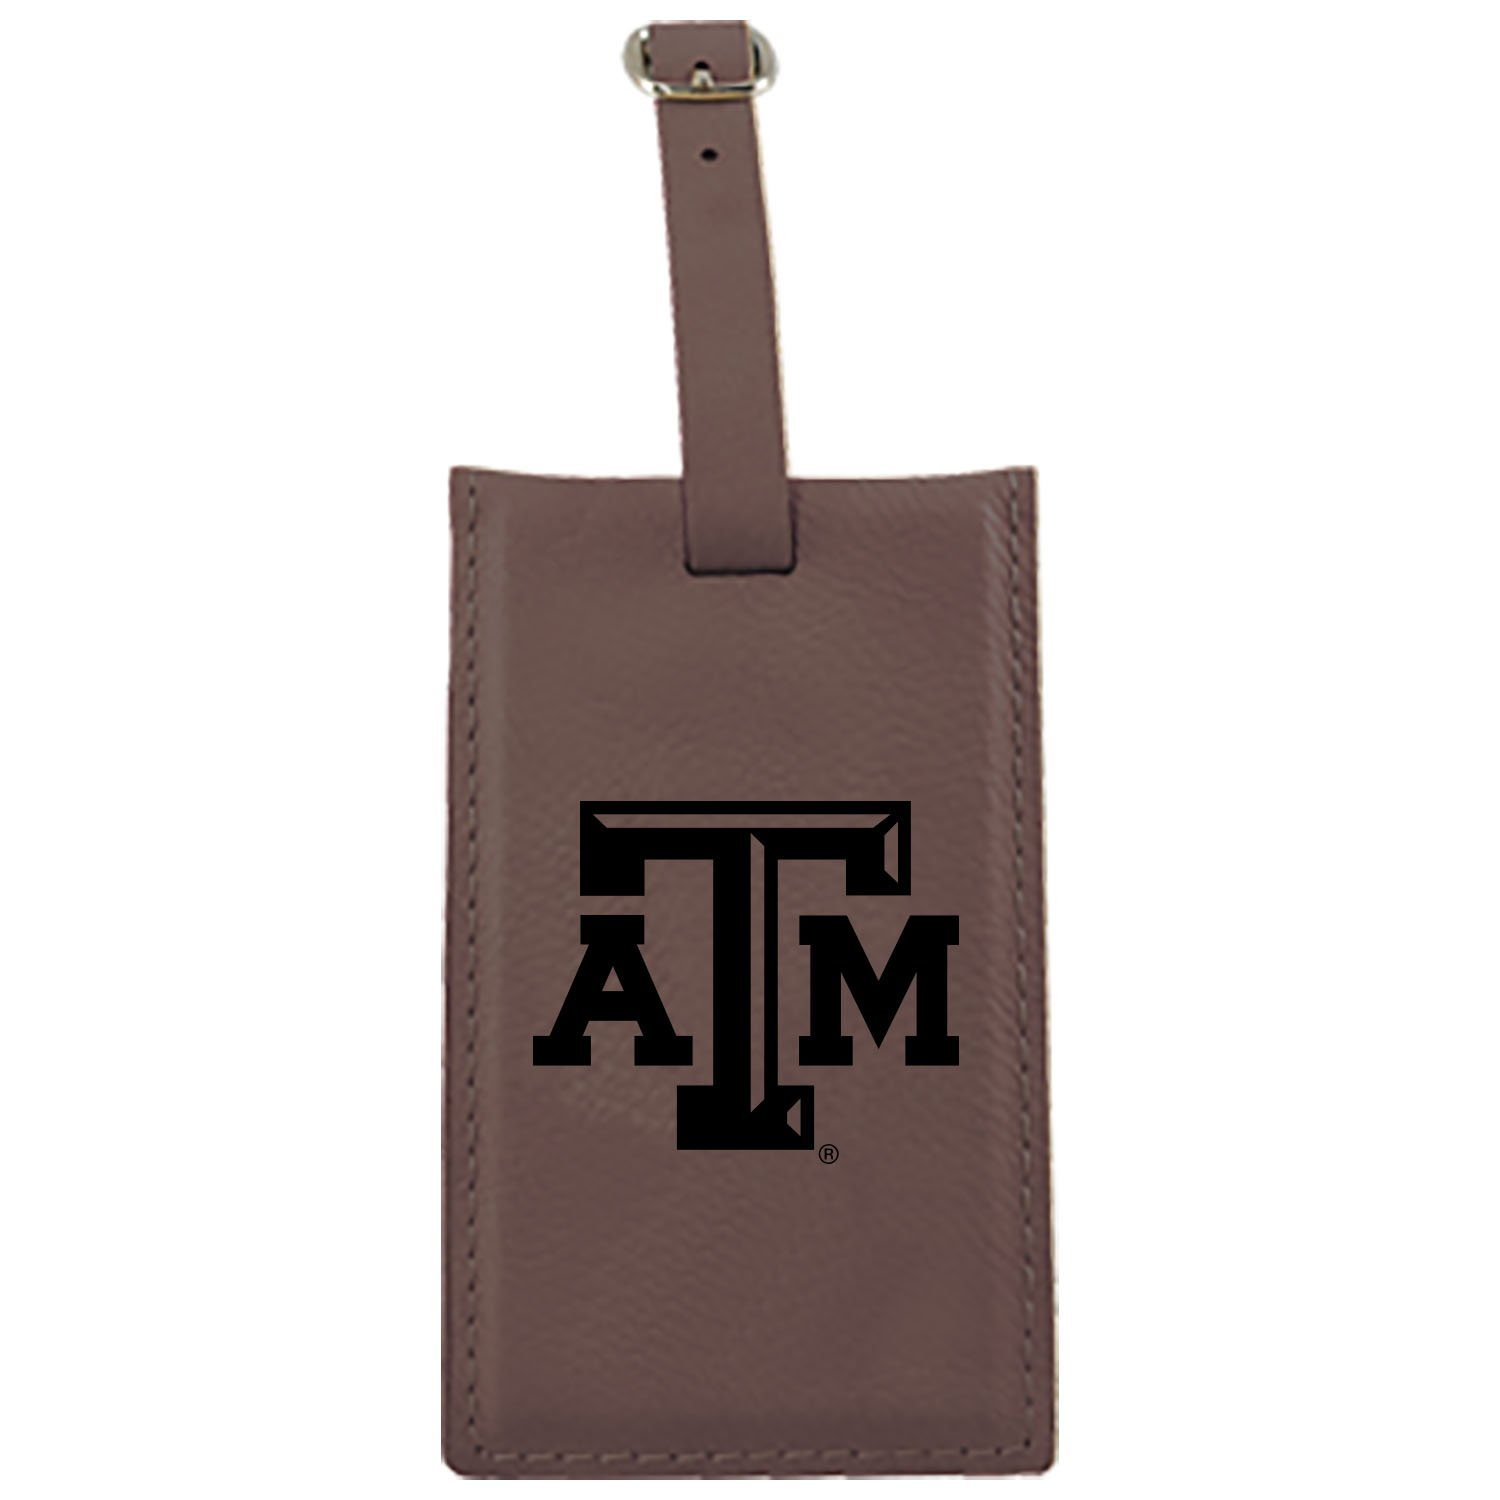 Texas A & M University – Leatherette Luggage tag-brown B013VZFT2O